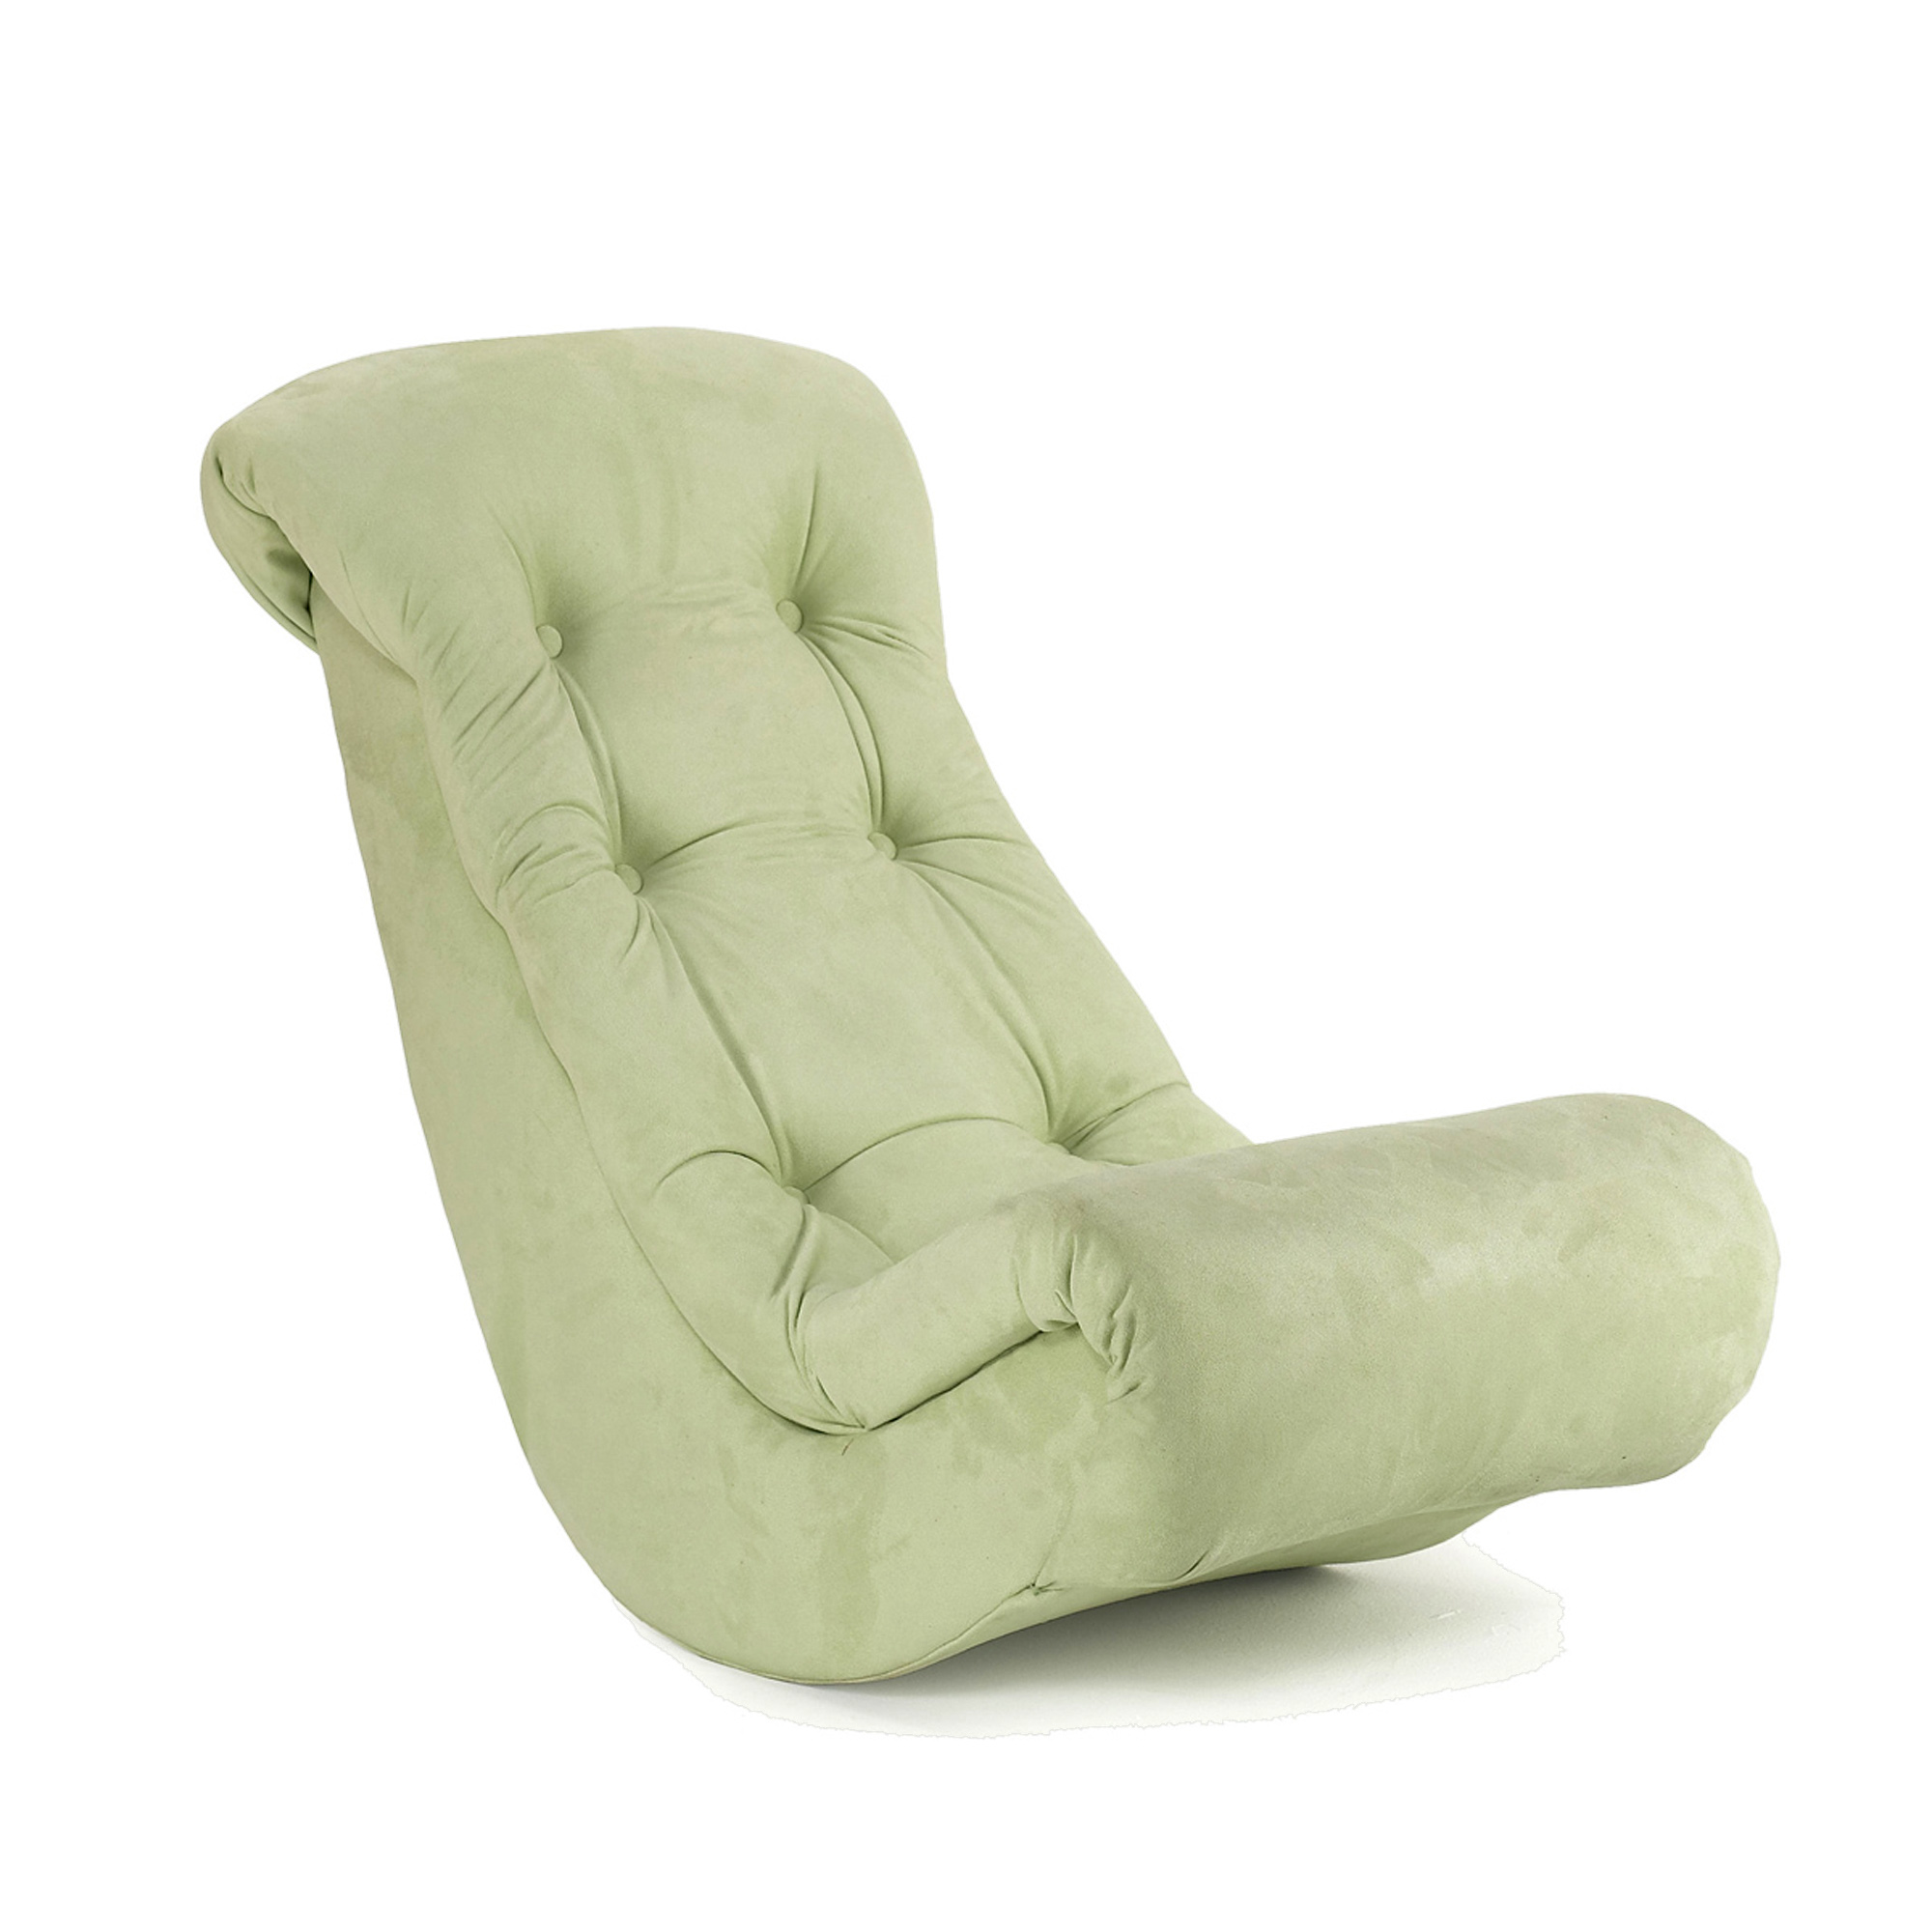 Banana Rocker Chair Komfy Kings Kids Classic Banana Rocker Lime Micro